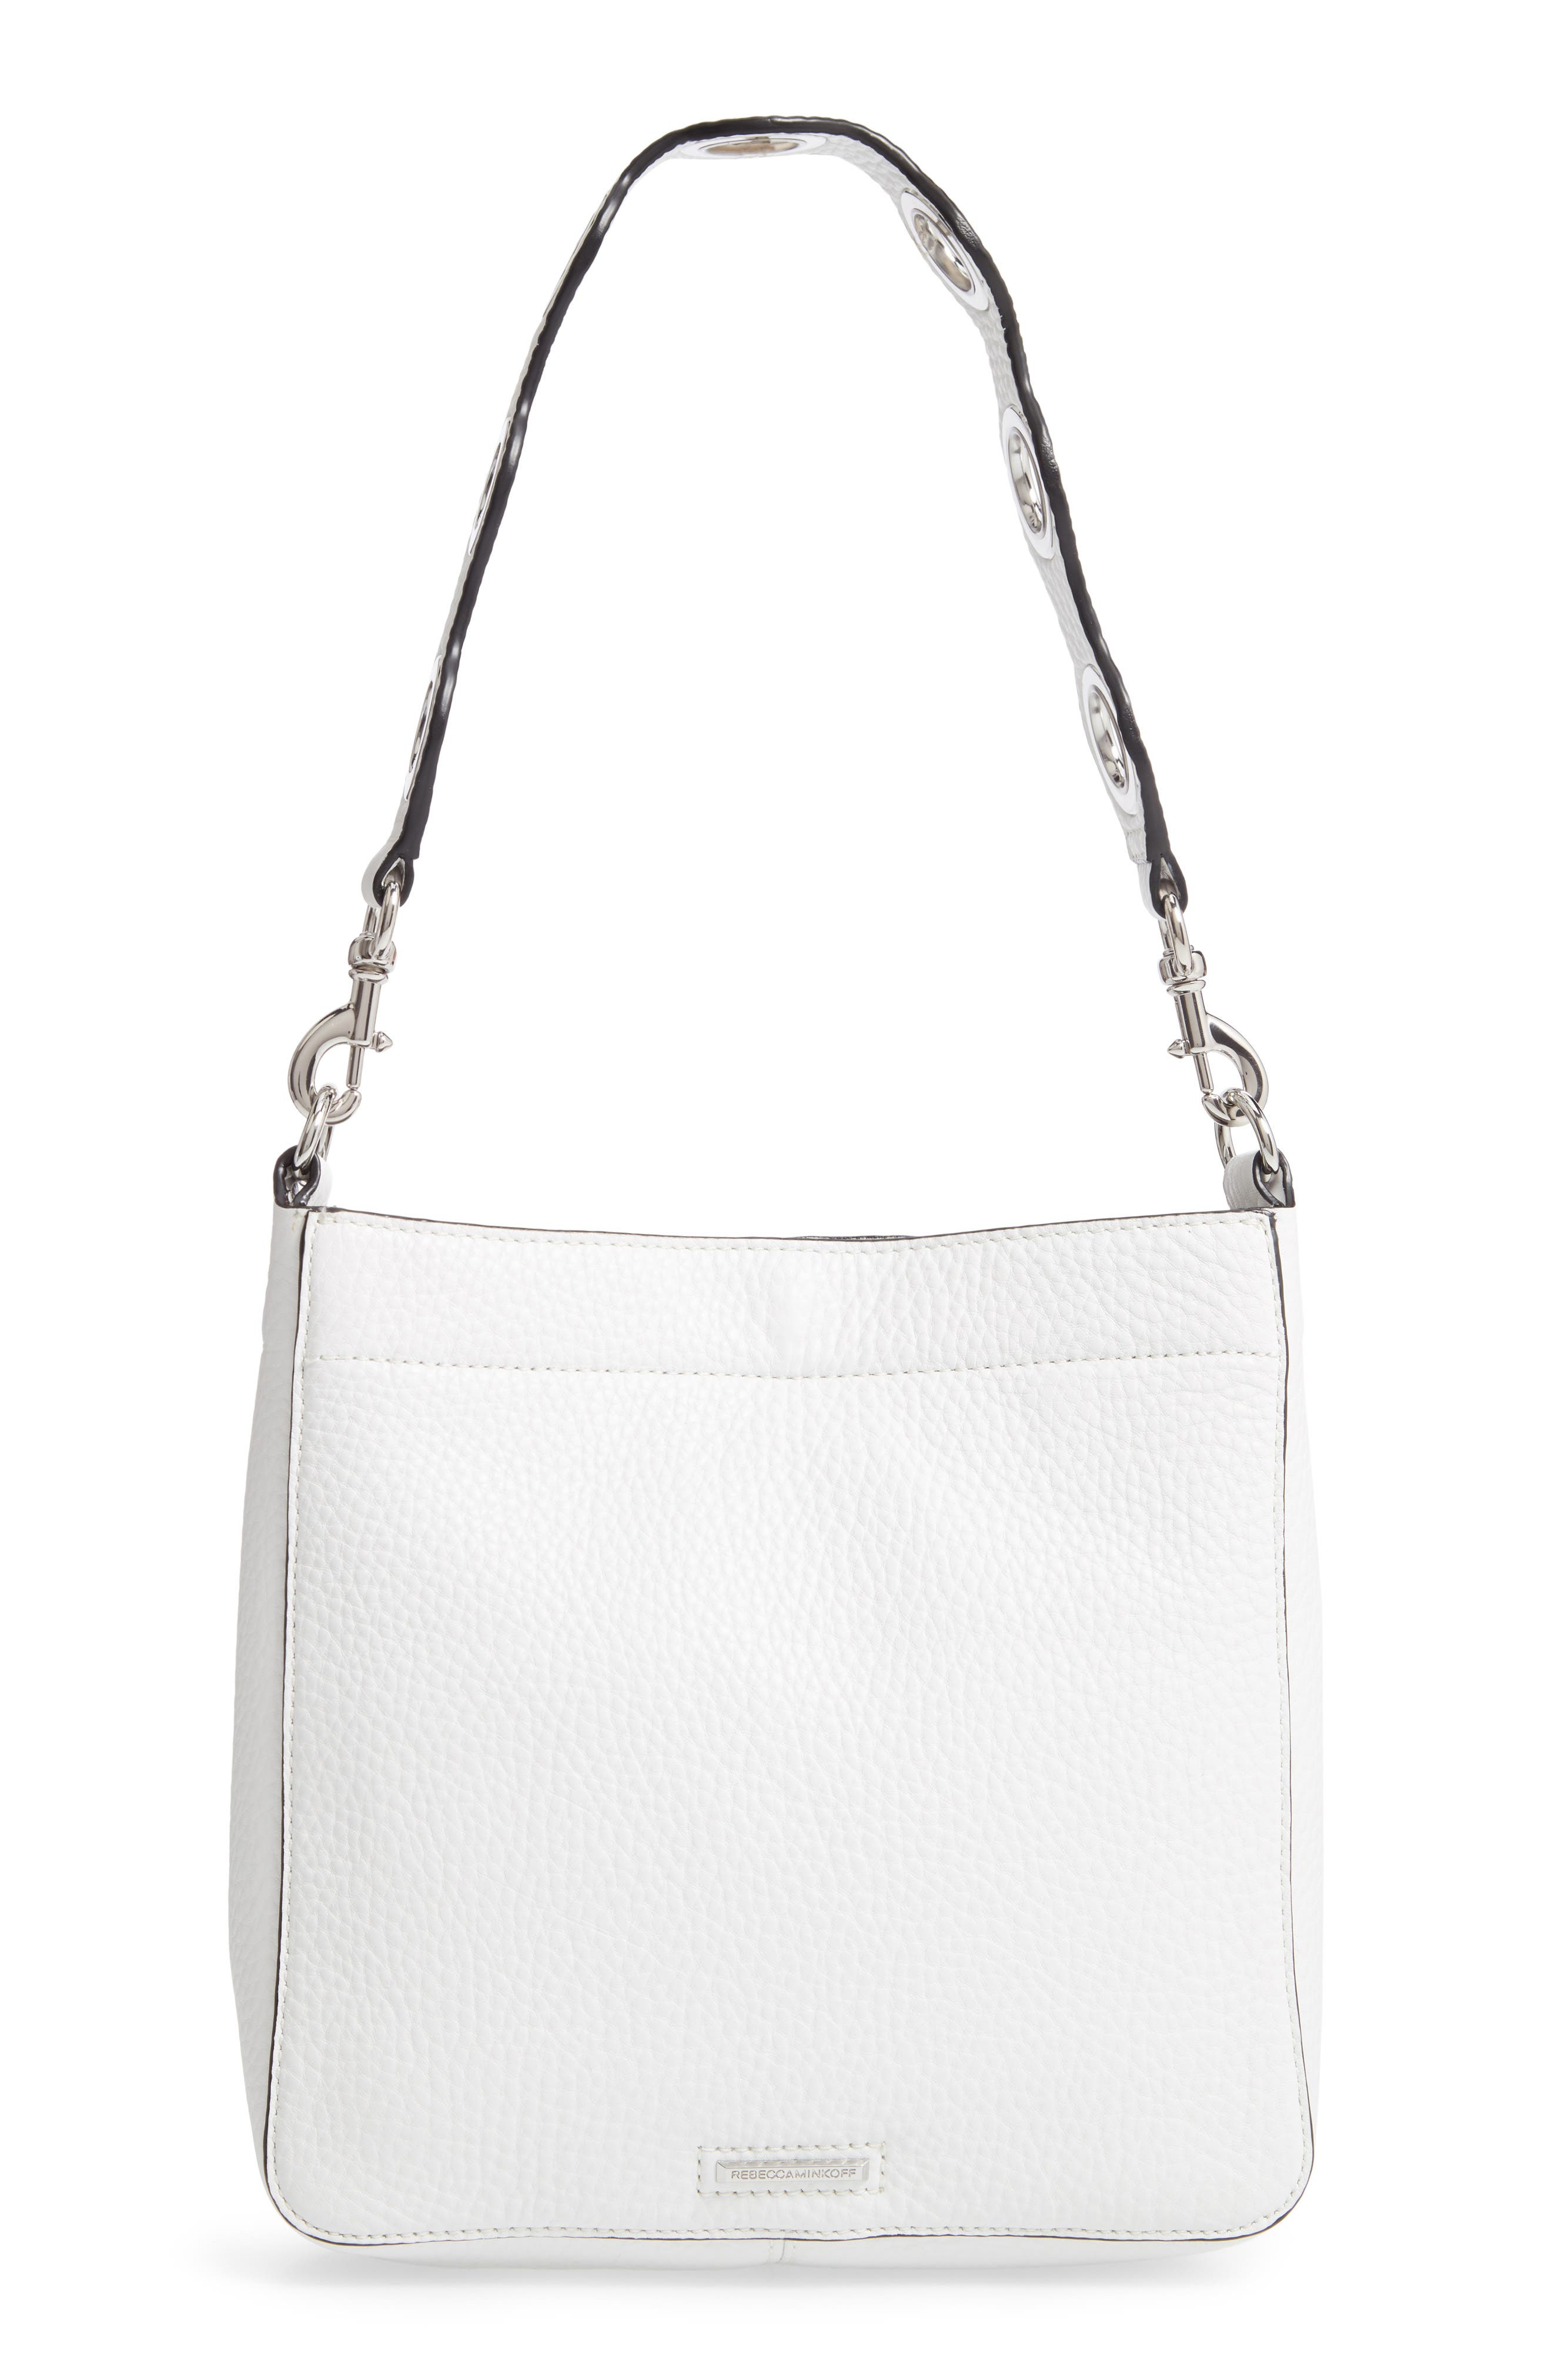 REBECCA MINKOFF, Small Studded Leather Feed Bag, Alternate thumbnail 5, color, OPTIC WHITE